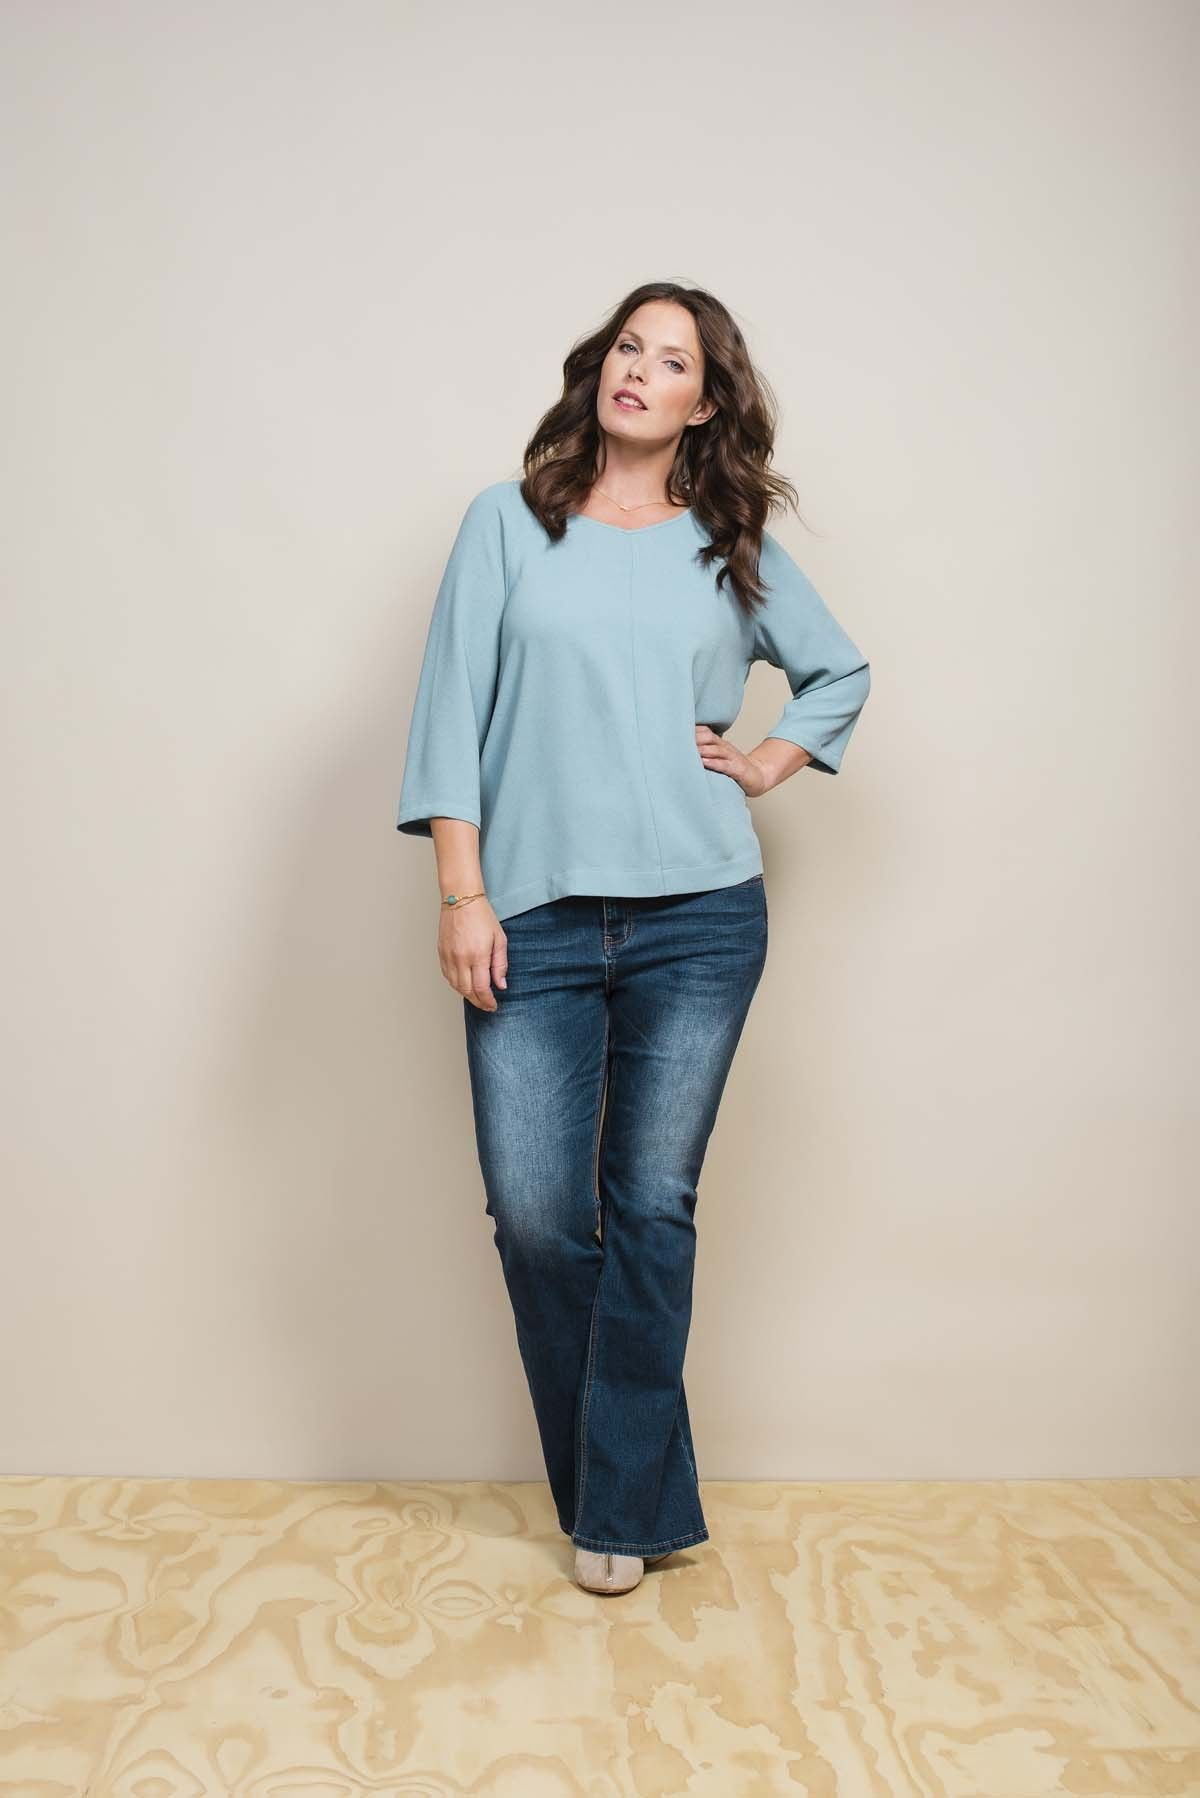 Heavenly Casual Tienda Online Ms Mode Moda Para Curvas